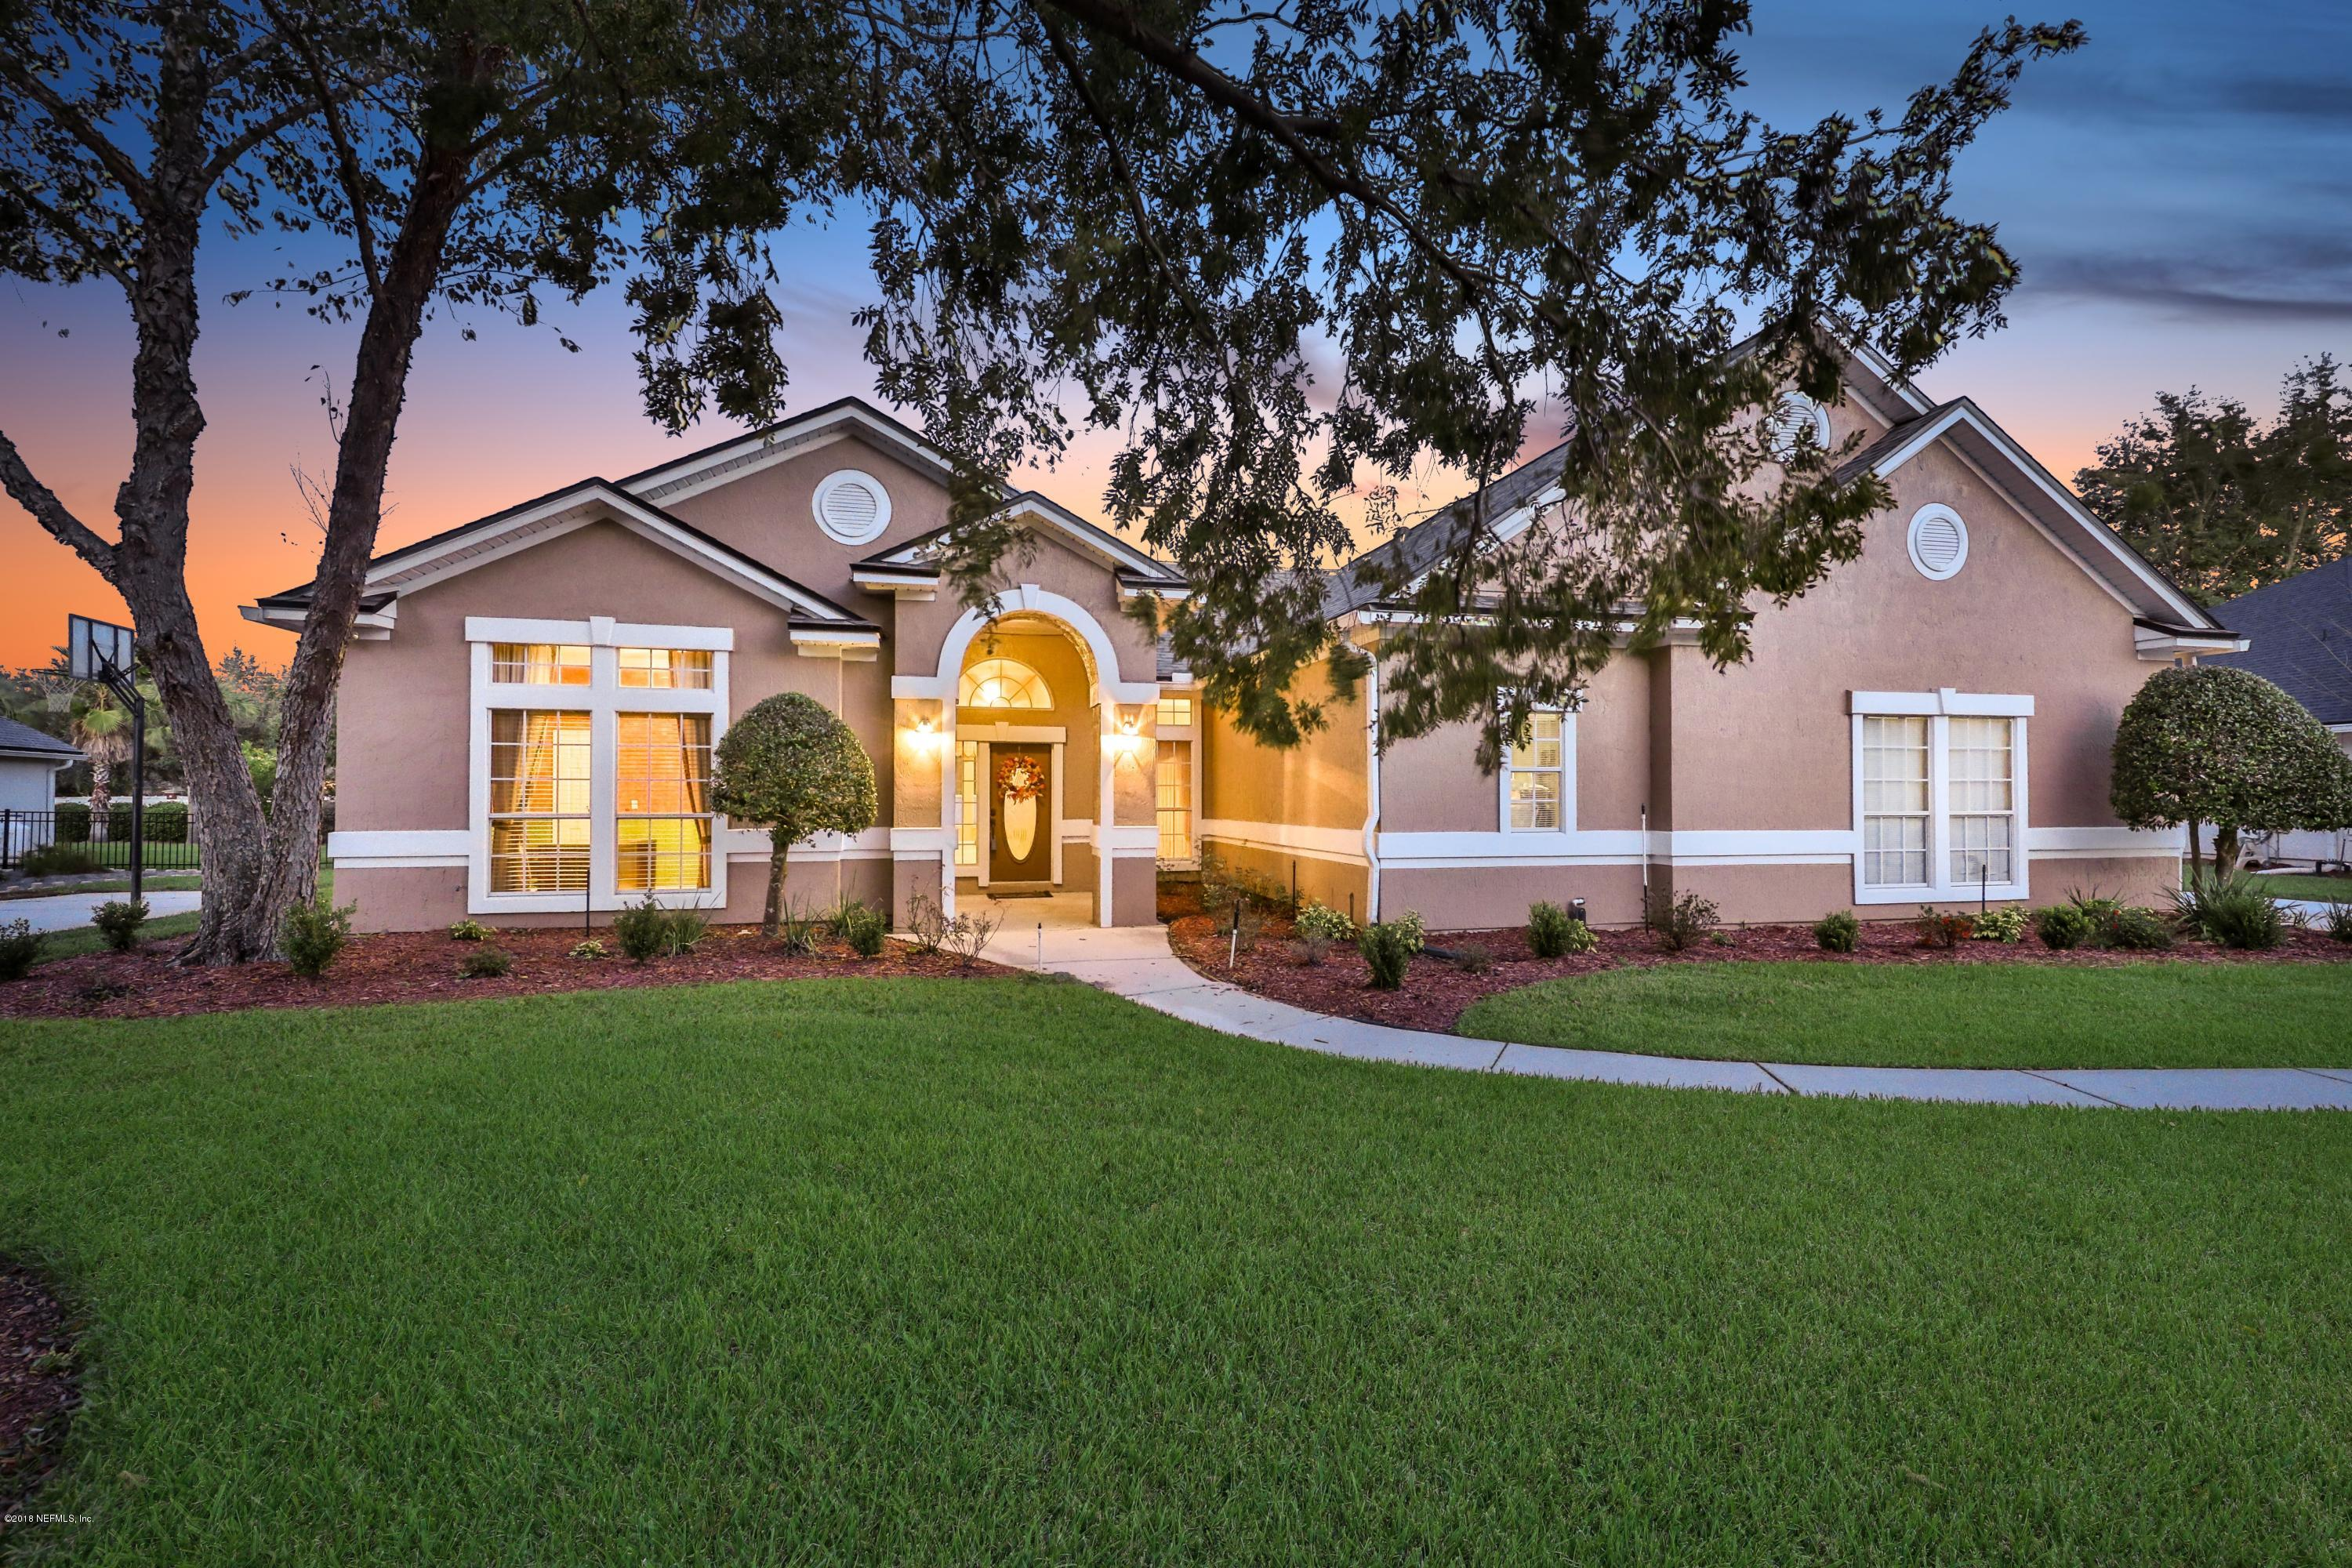 242 EDGEWATER BRANCH, JACKSONVILLE, FLORIDA 32259, 4 Bedrooms Bedrooms, ,3 BathroomsBathrooms,Residential - single family,For sale,EDGEWATER BRANCH,969000